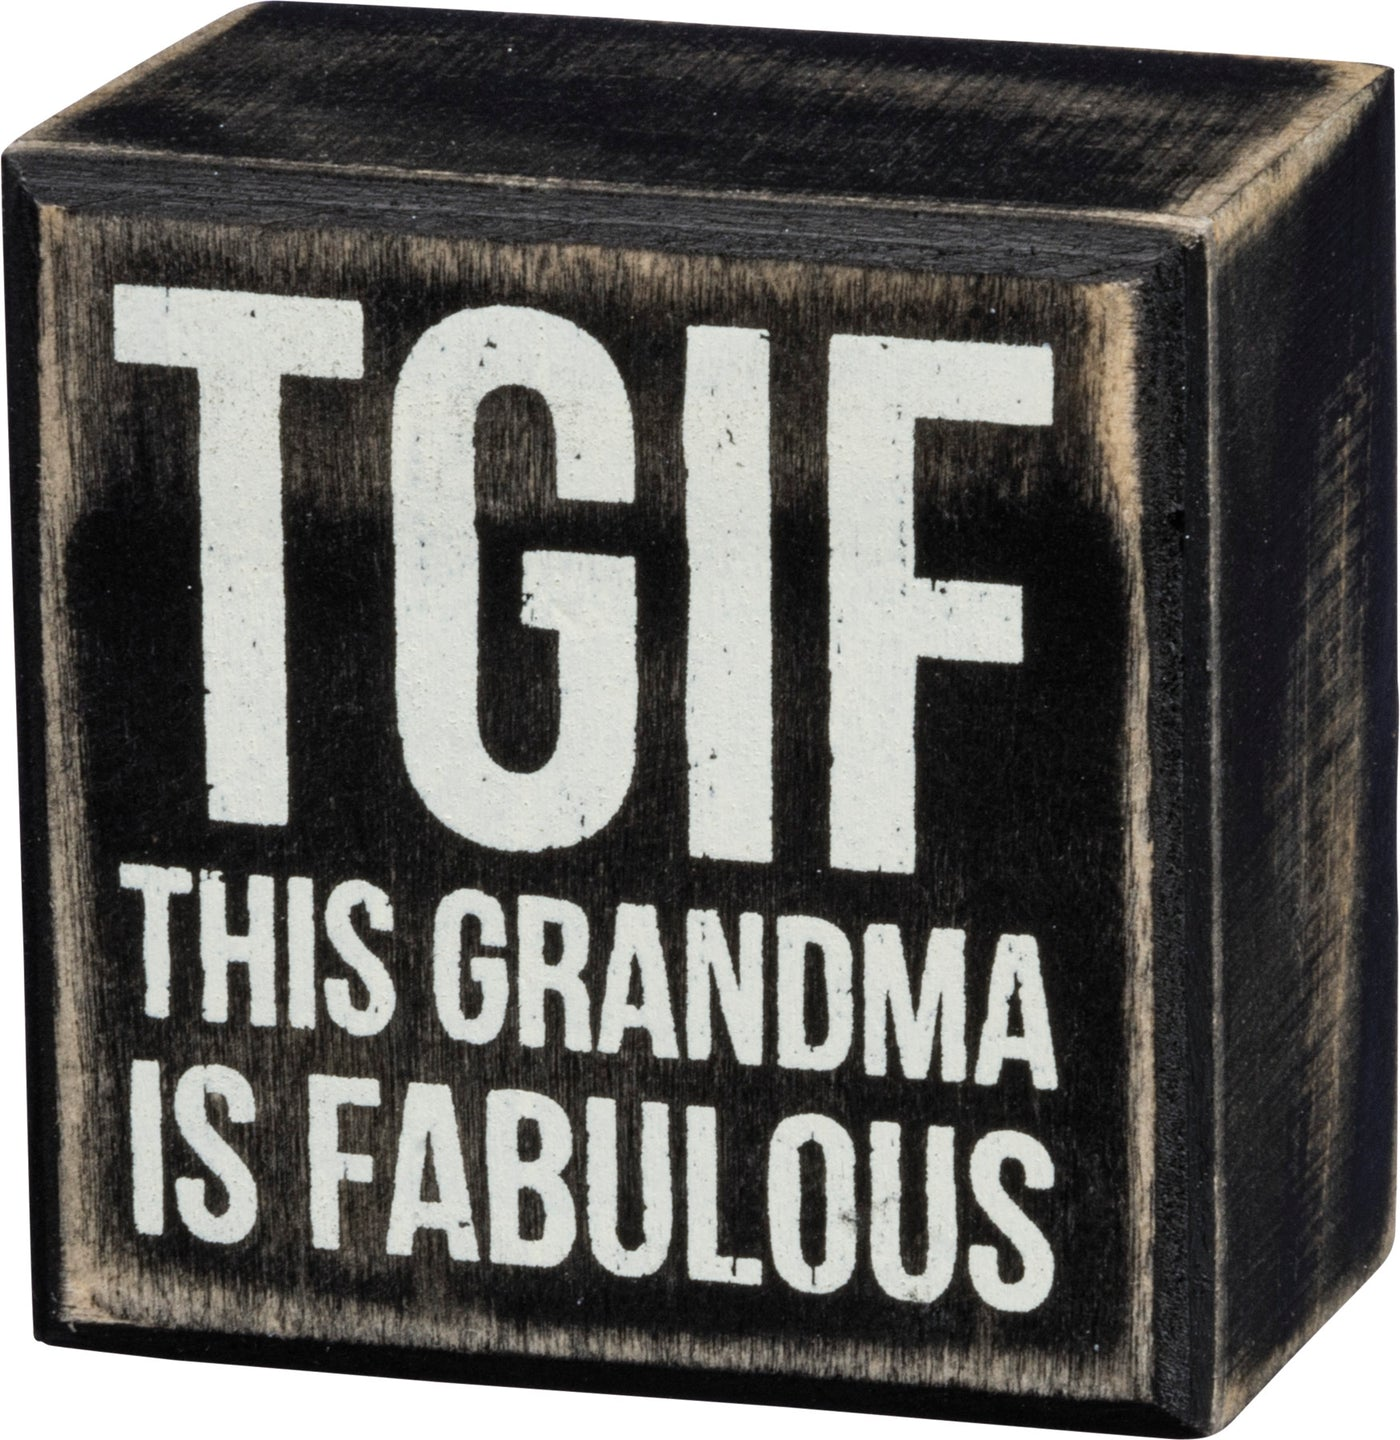 TGIF Sign (This Grandma Is Fabulous)